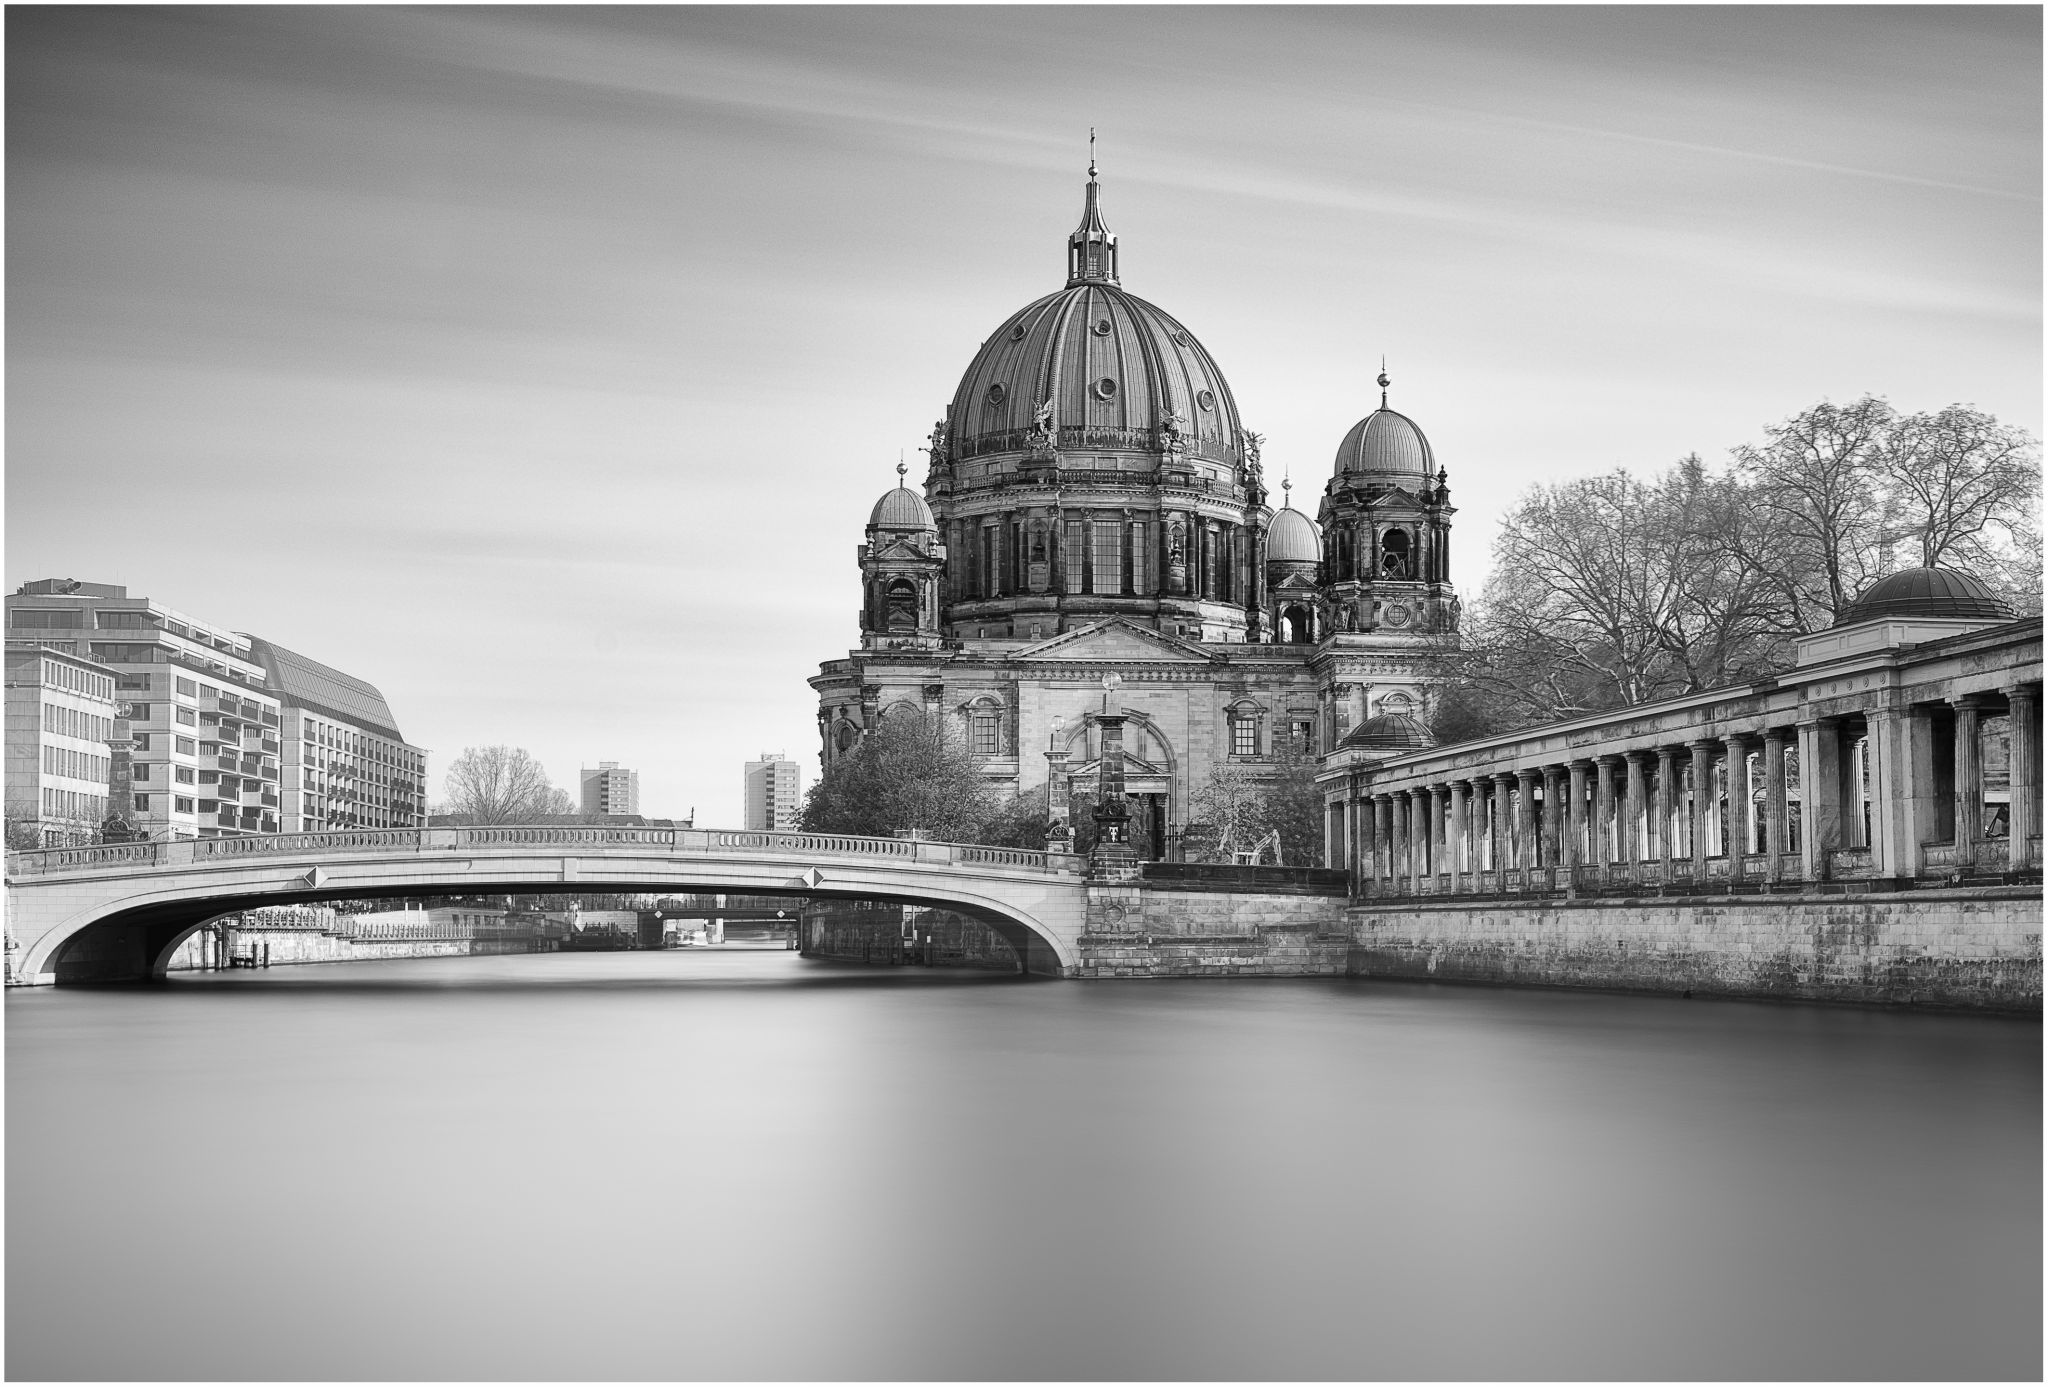 Berliner Dom, James Simon Park, Germany